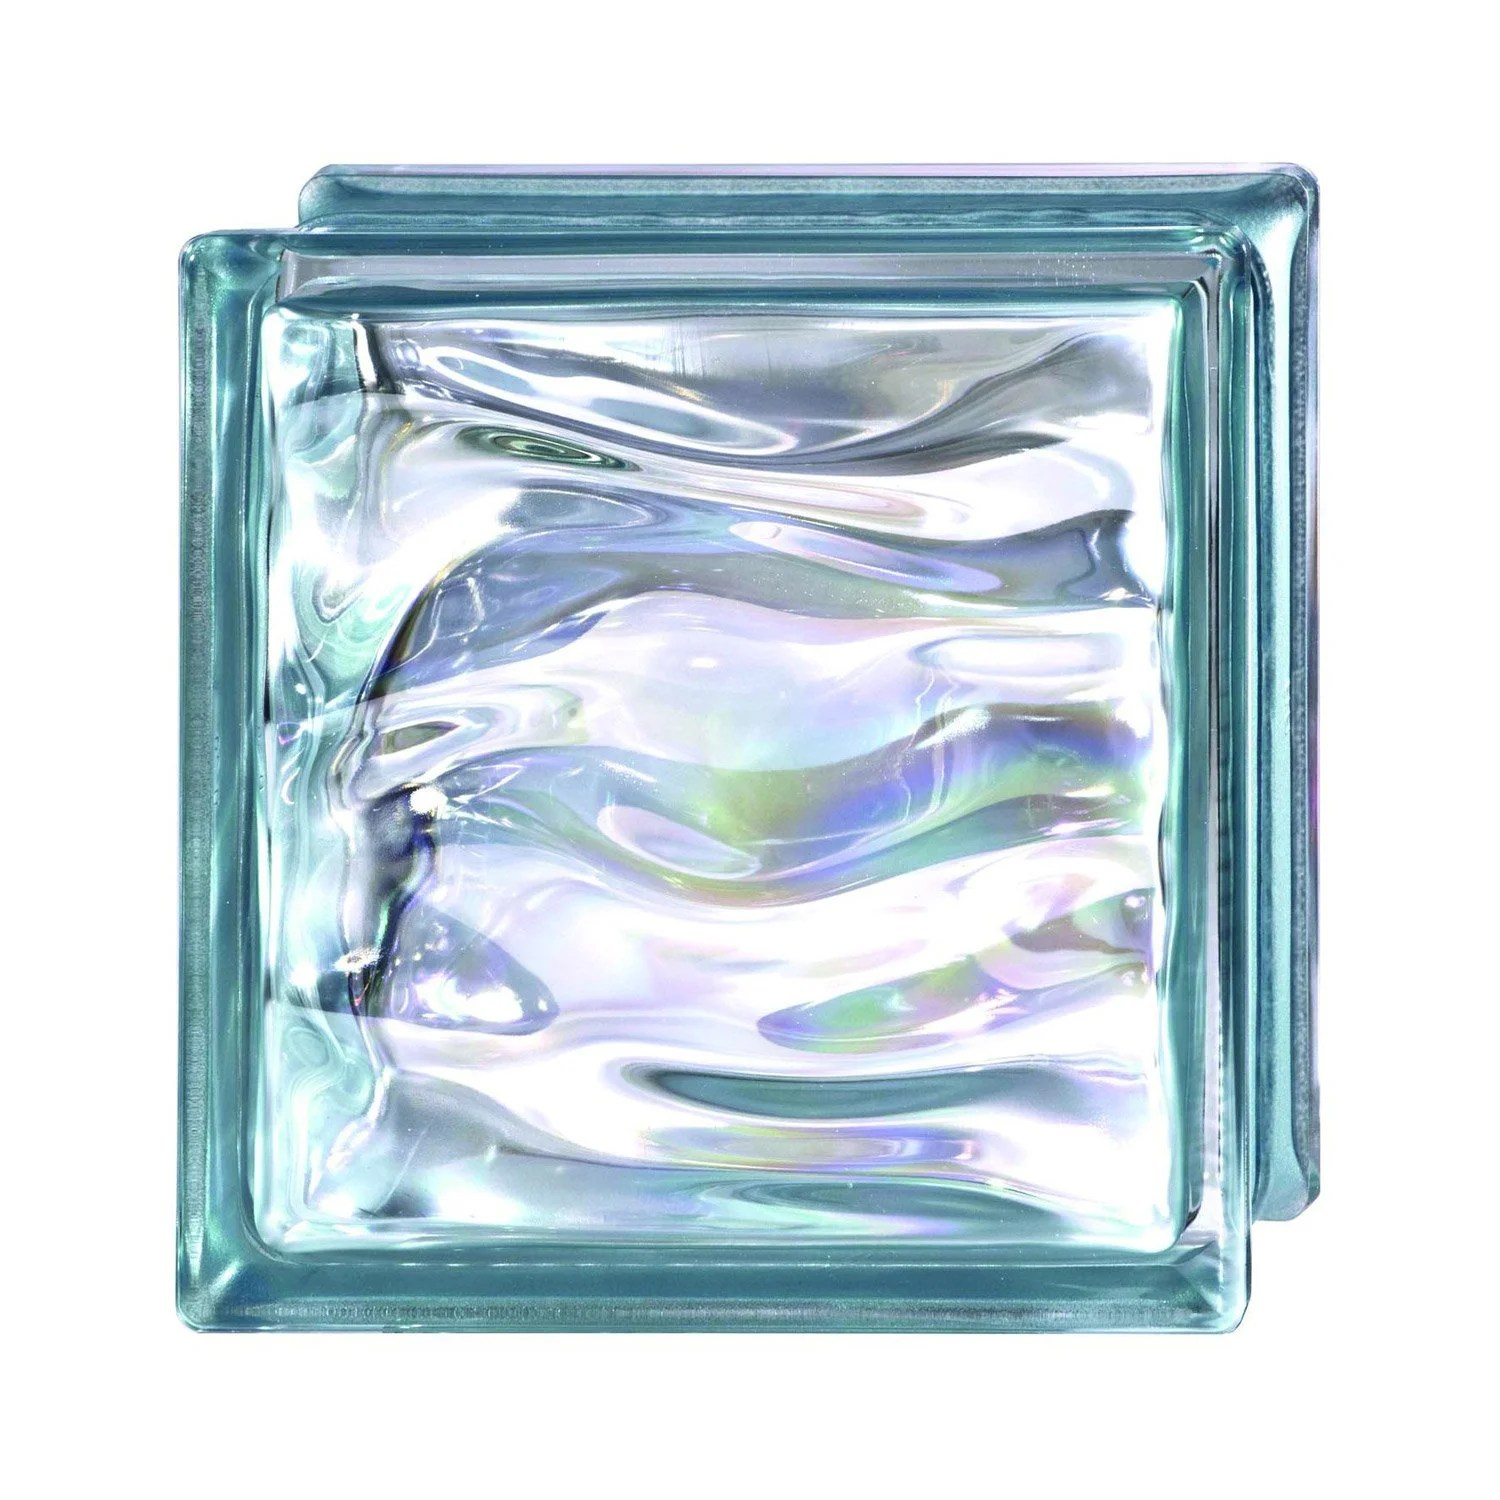 Carreau De Verre Brique De Verre Bleu Vague Brillant